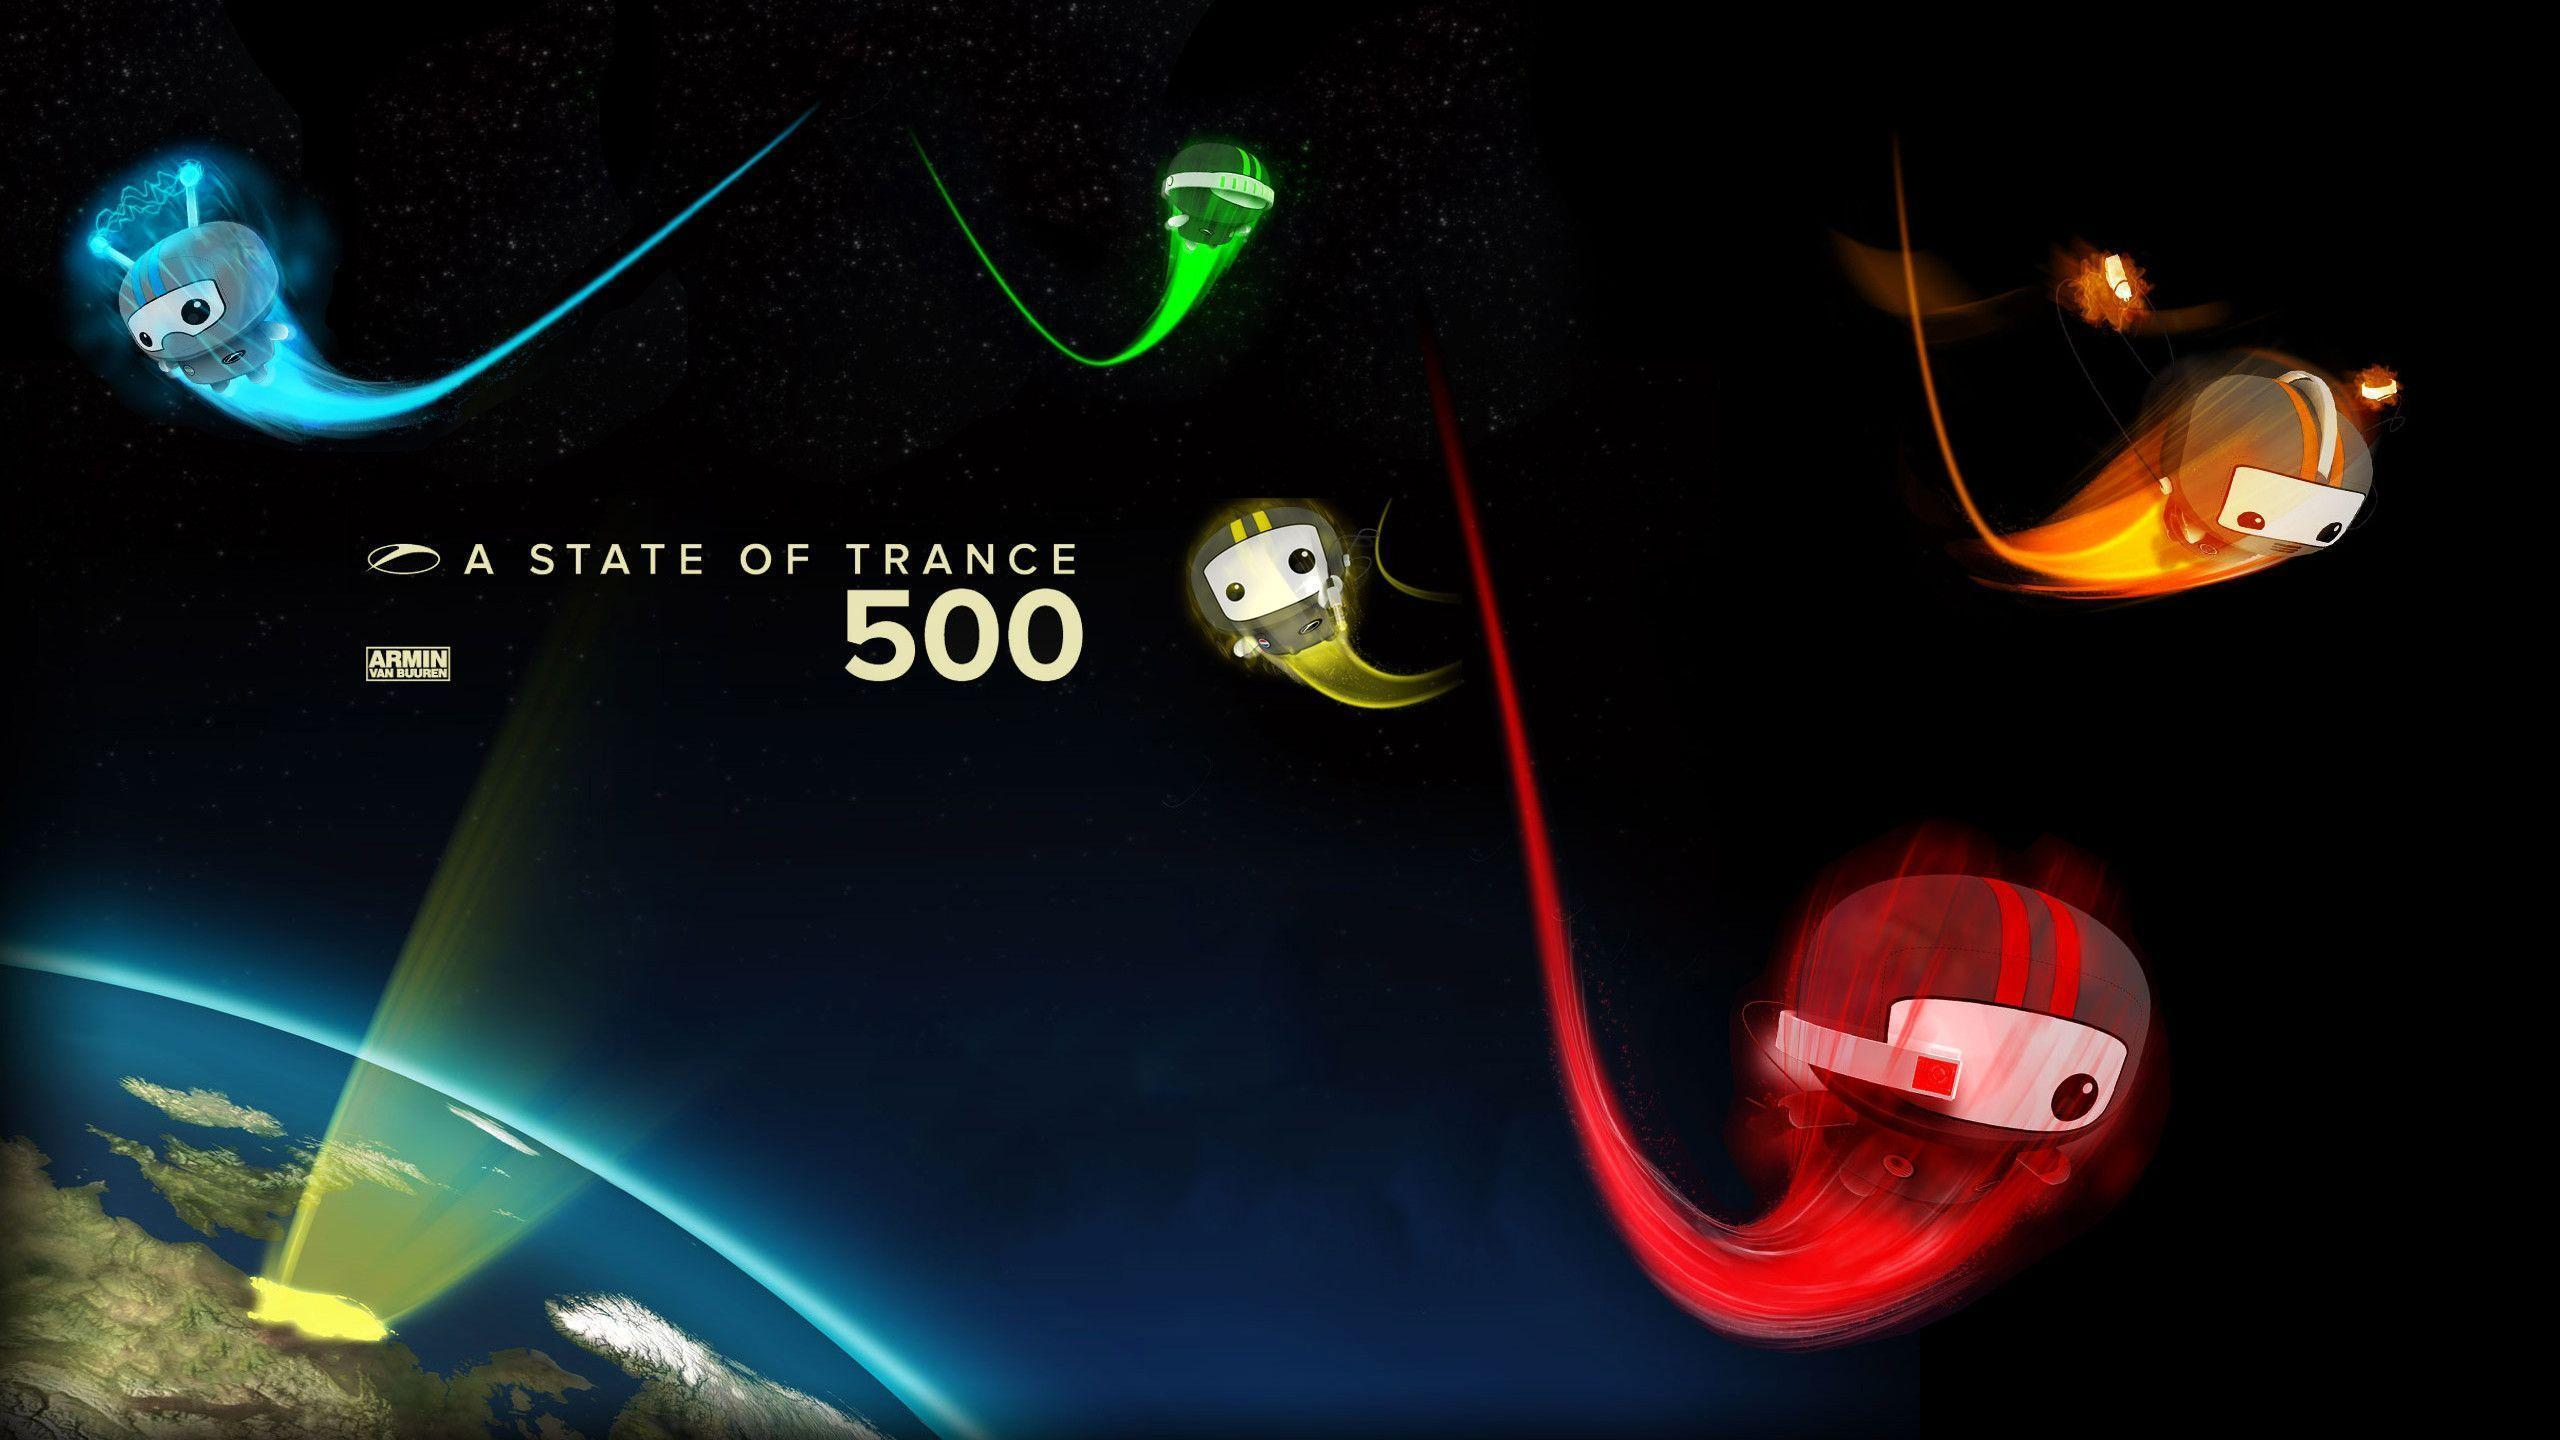 A State Of Trance Wallpapers 2560x1440